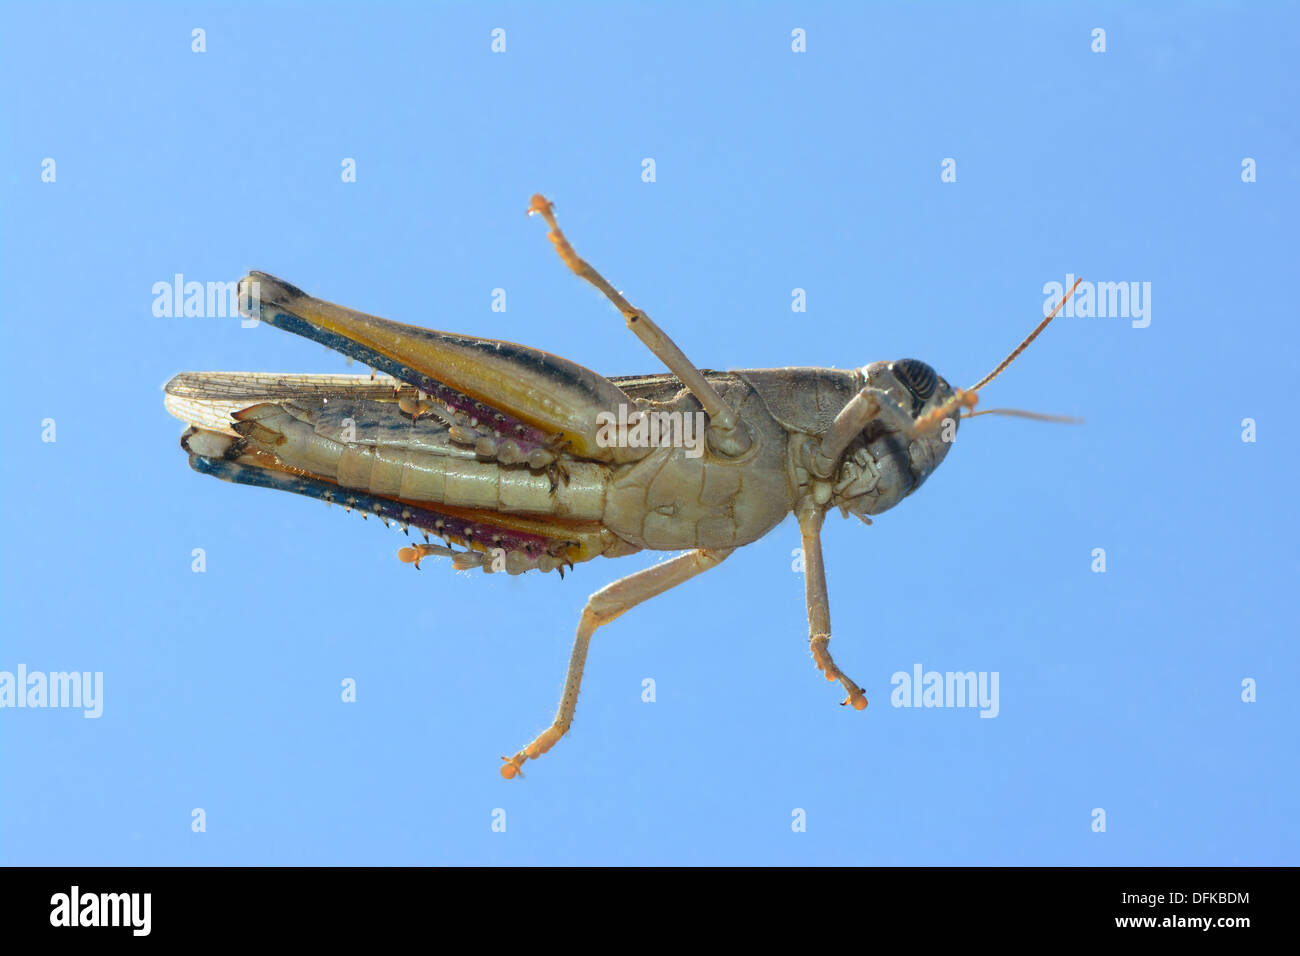 Grasshopper from below - Stock Image